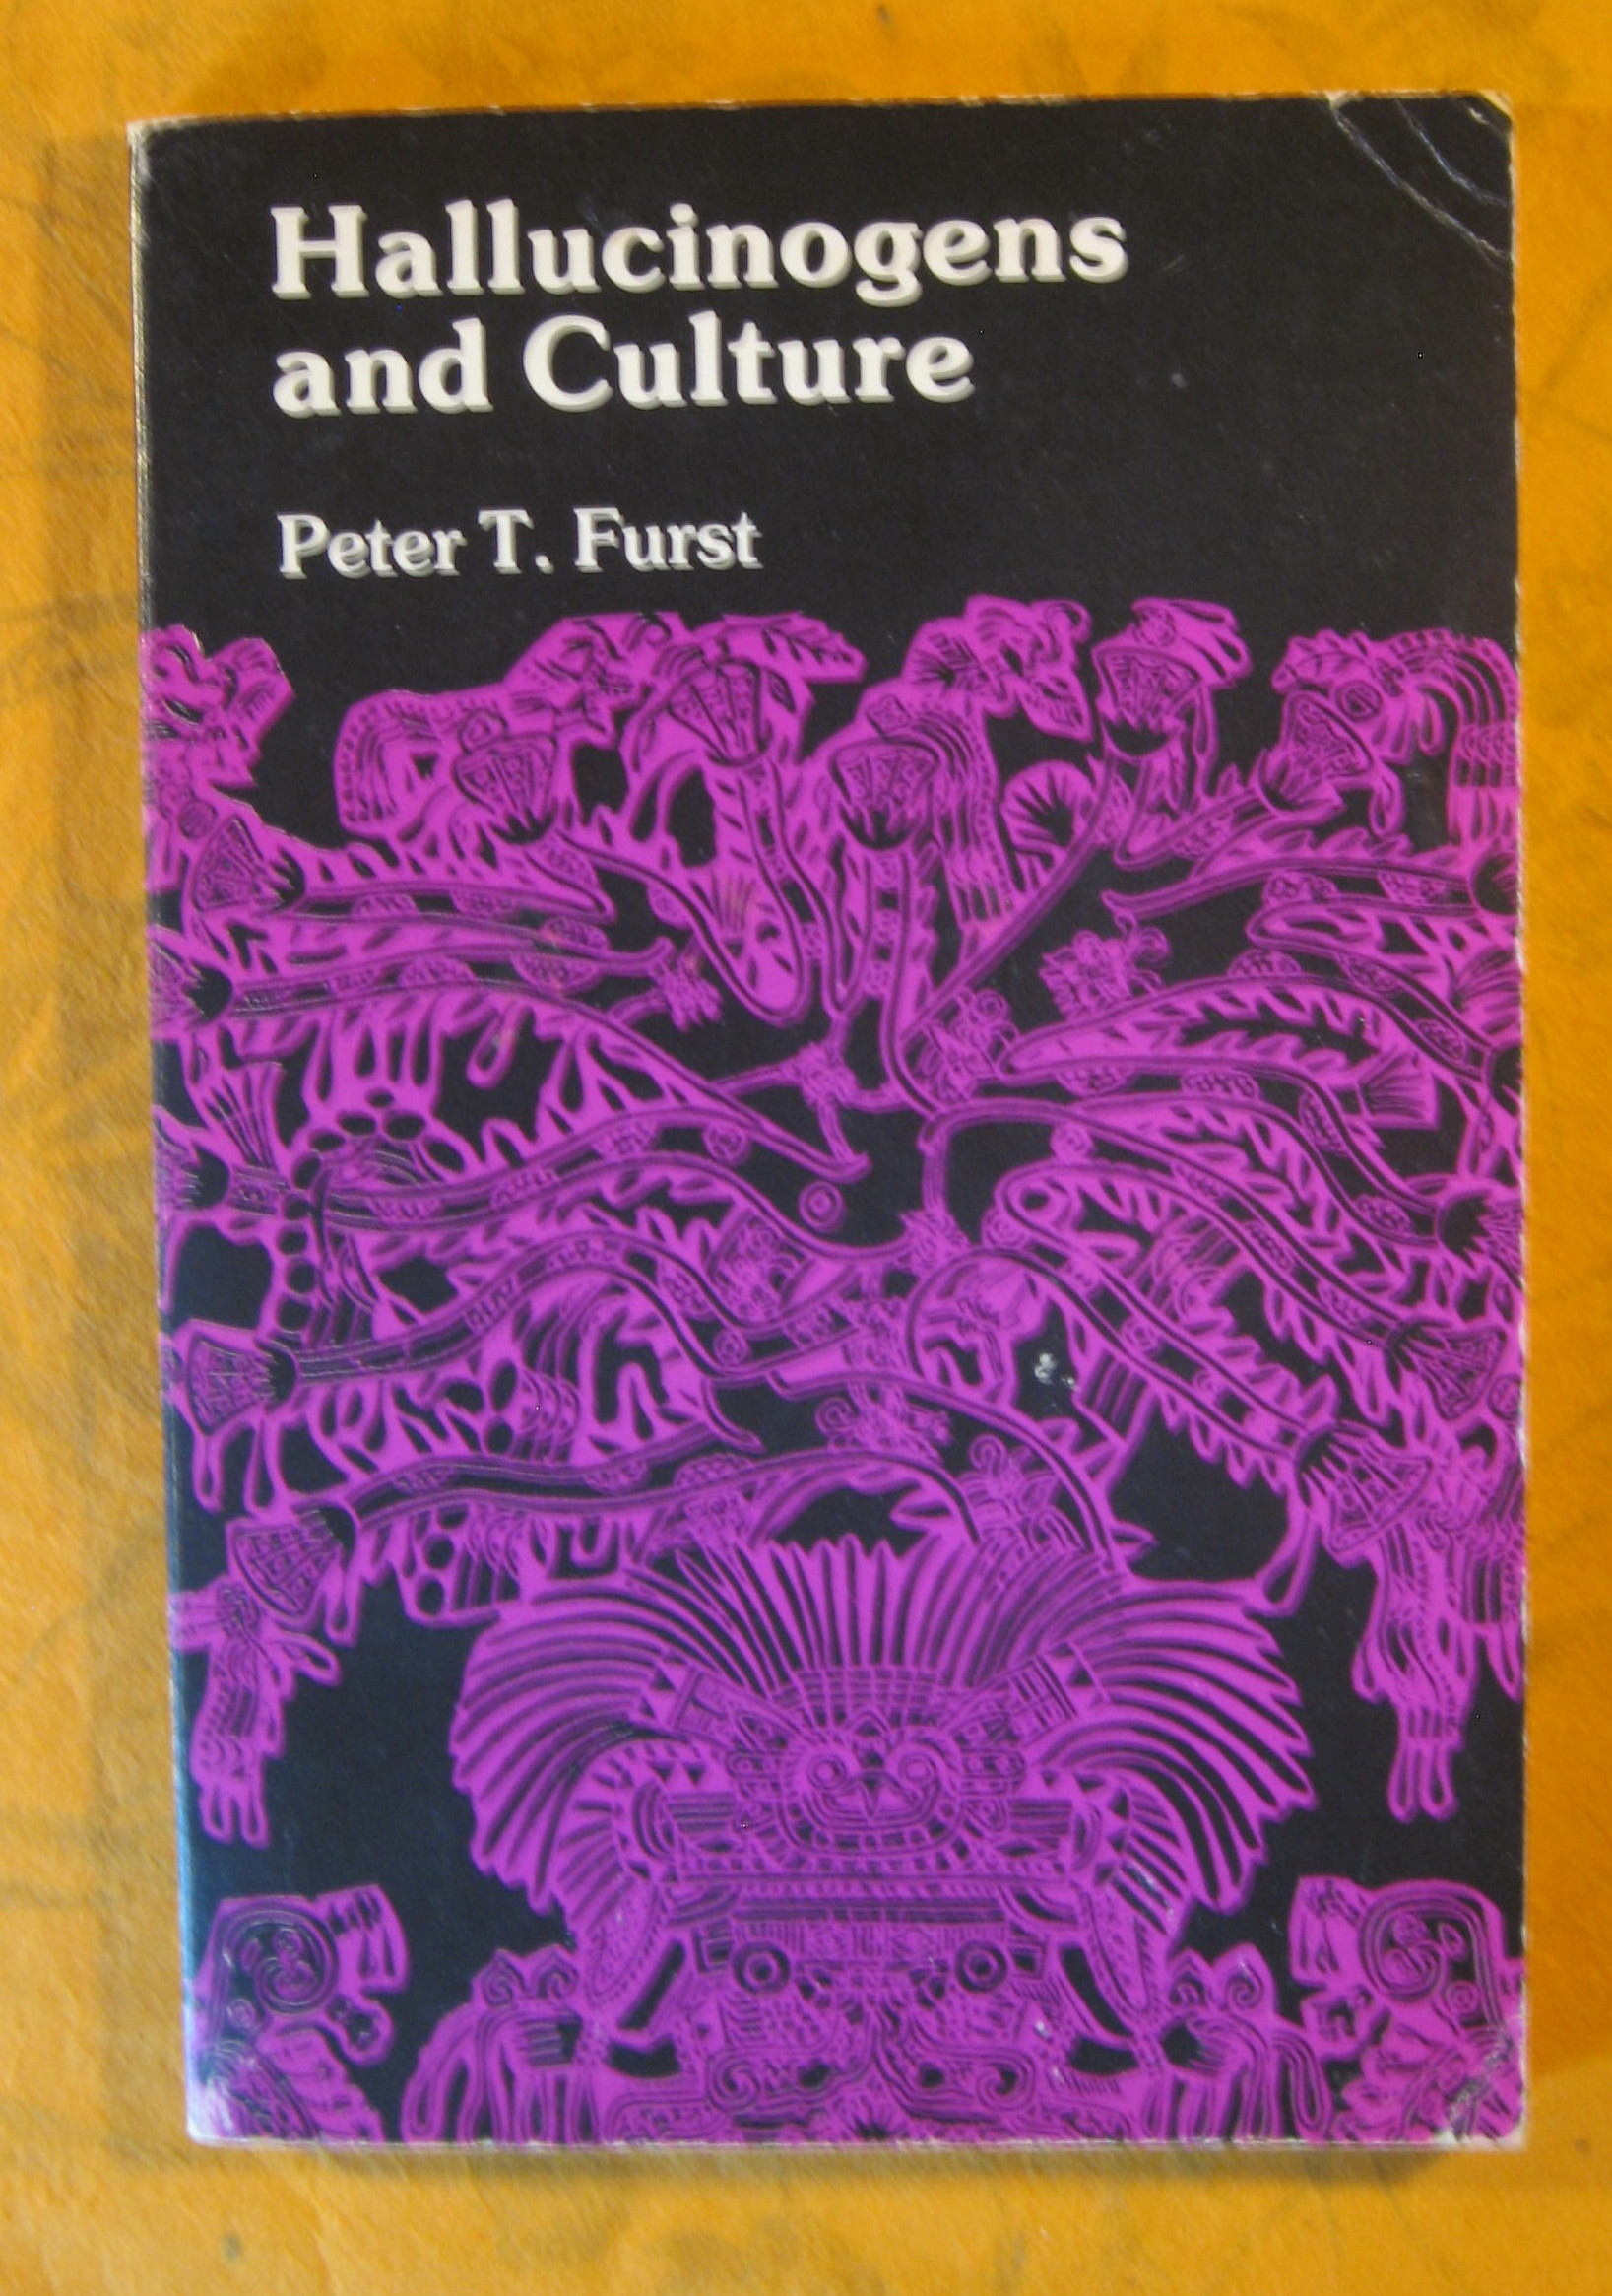 Image for Hallucinogens and Culture (Chandler & Sharp series in cross-cultural themes)